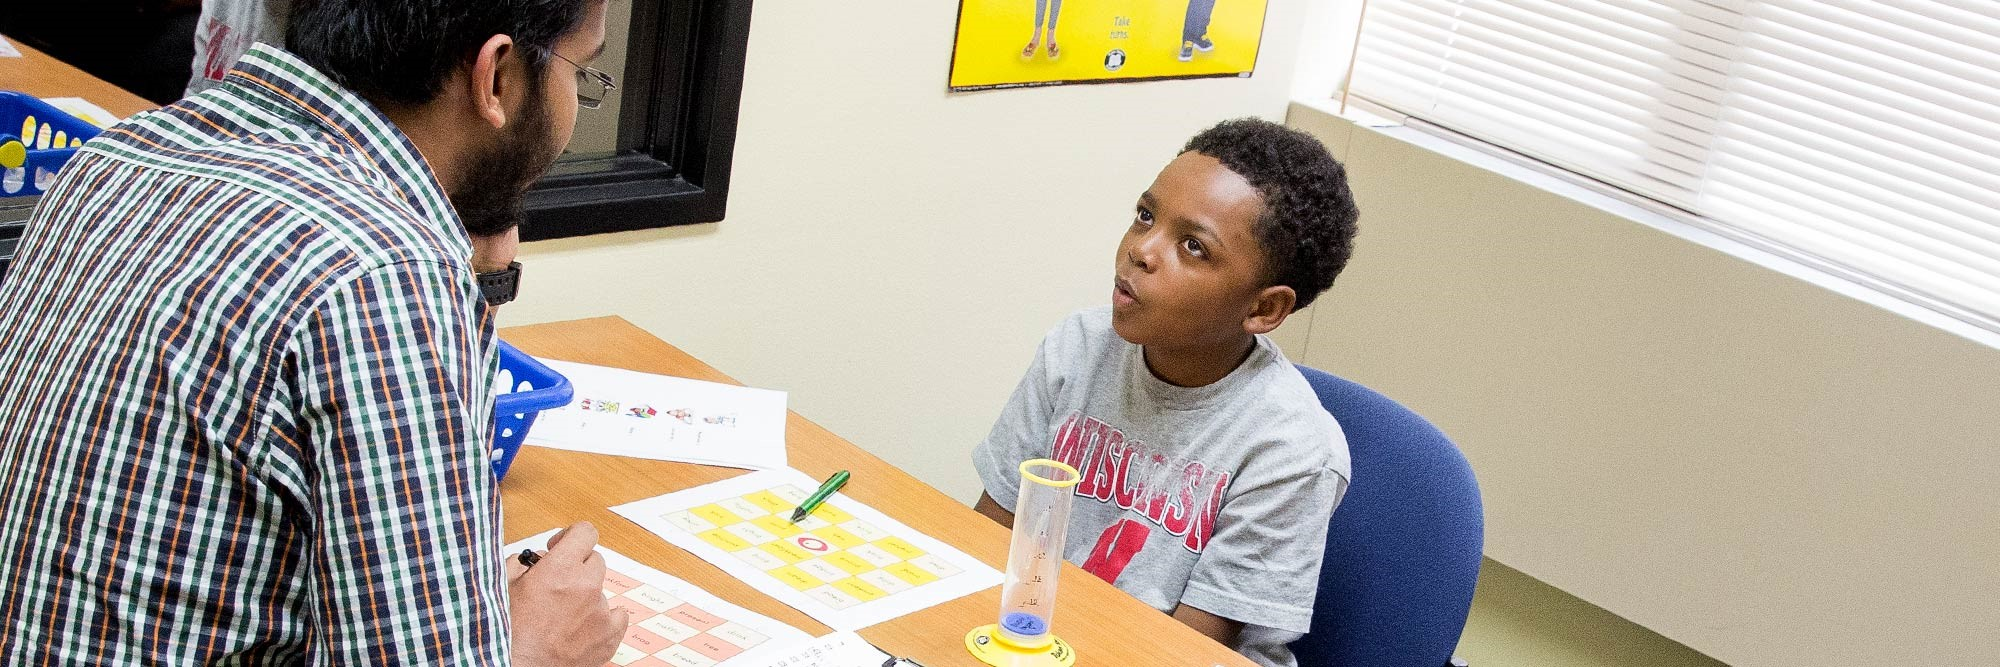 banner-communication-sciences-disorders-bs A student clinician does a word-retrieval task with his young client.